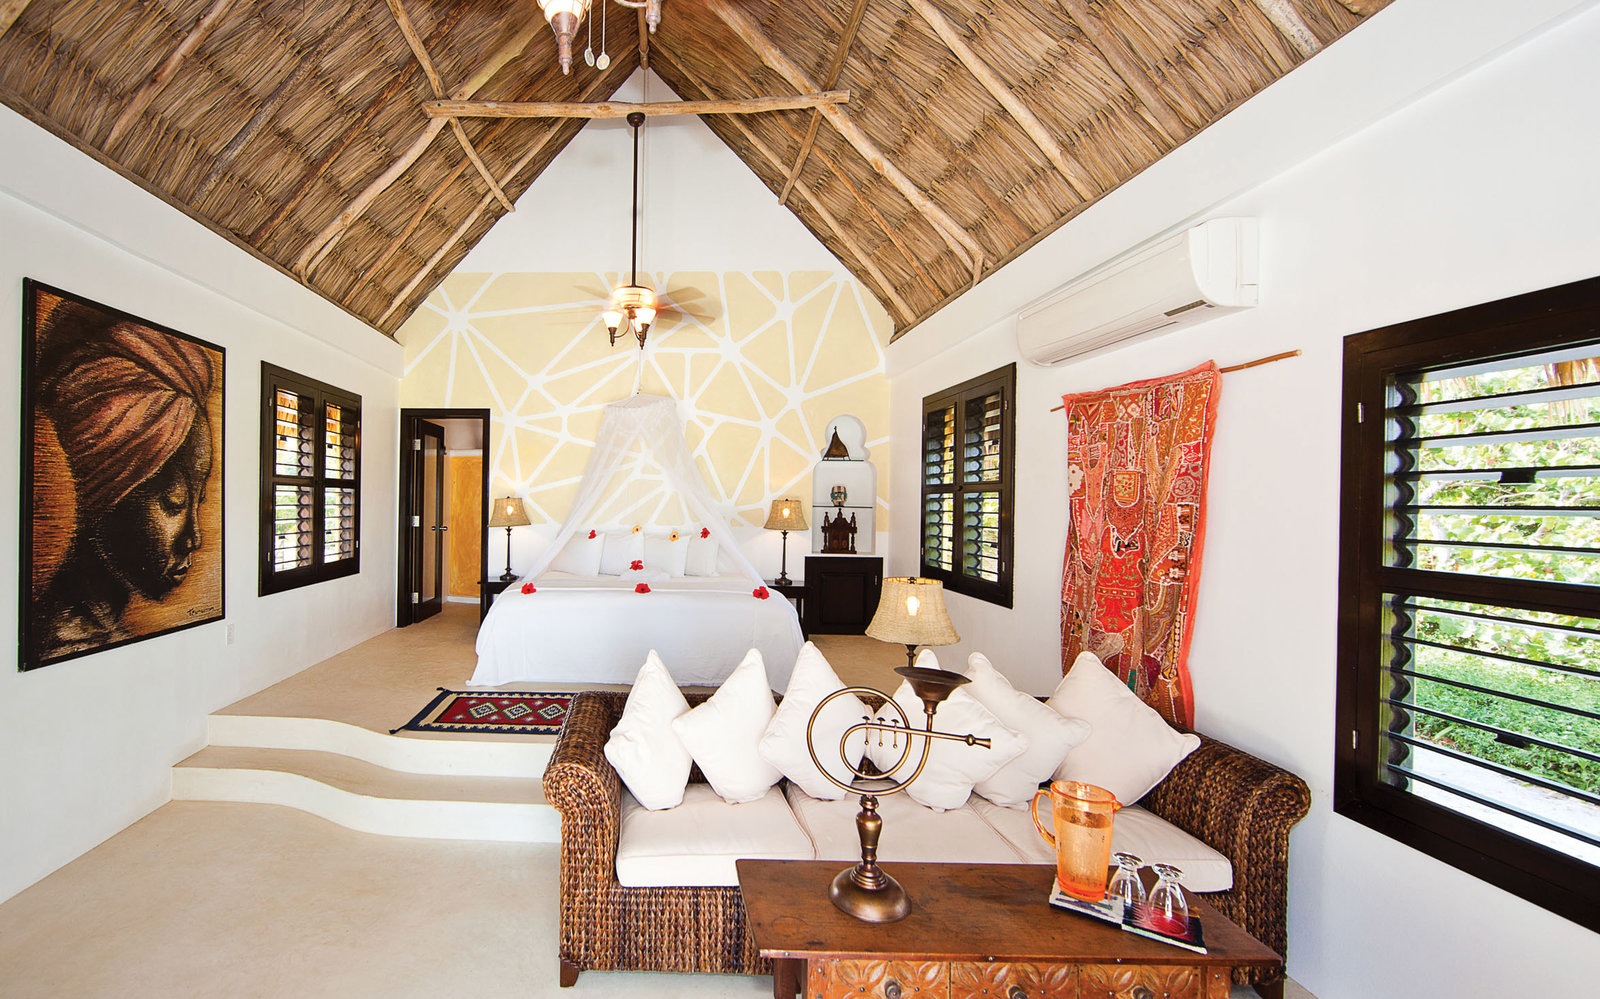 No. 3 (Tie): Matachica Resort & Spa, Ambergris Cay, Belize